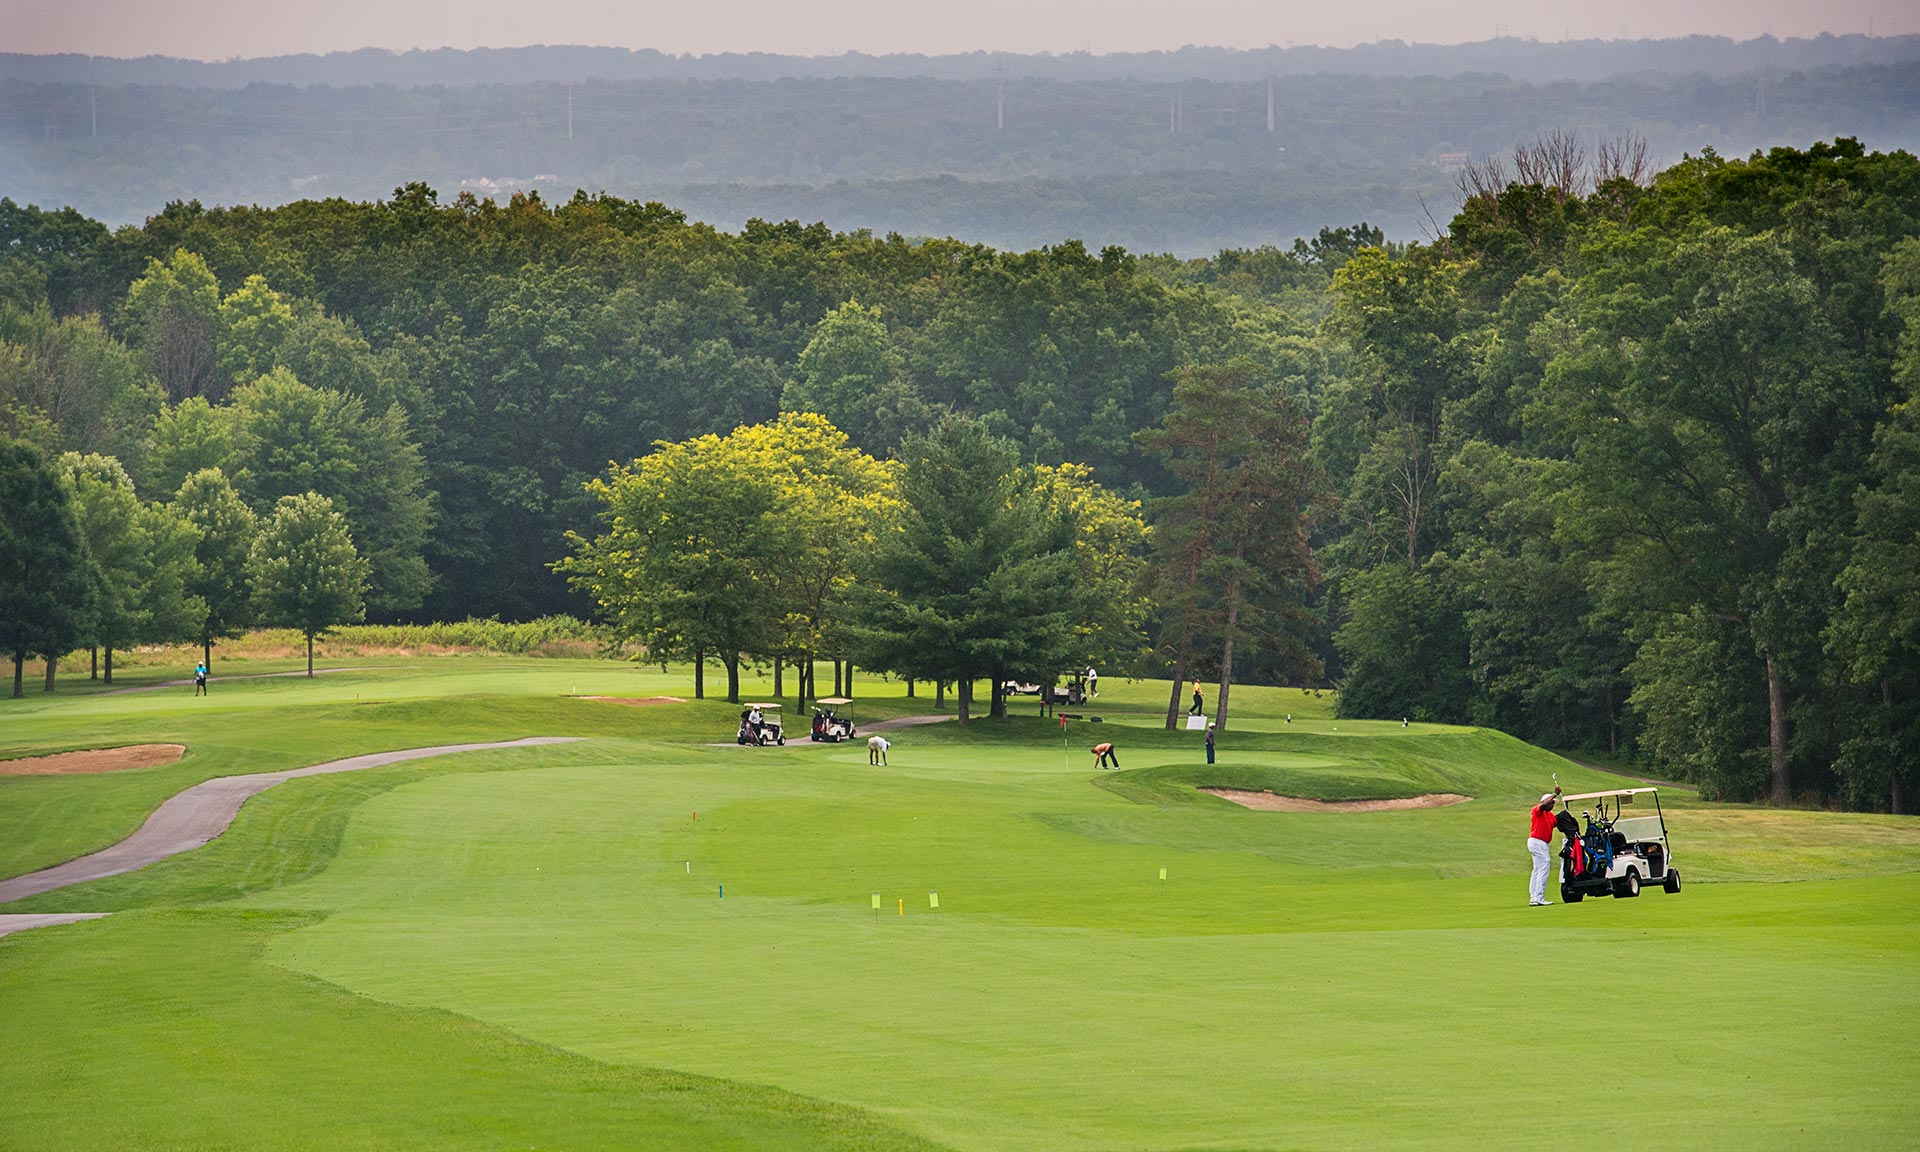 Views of Cuyahoga River Valley on Sleep Hollow Golf Course